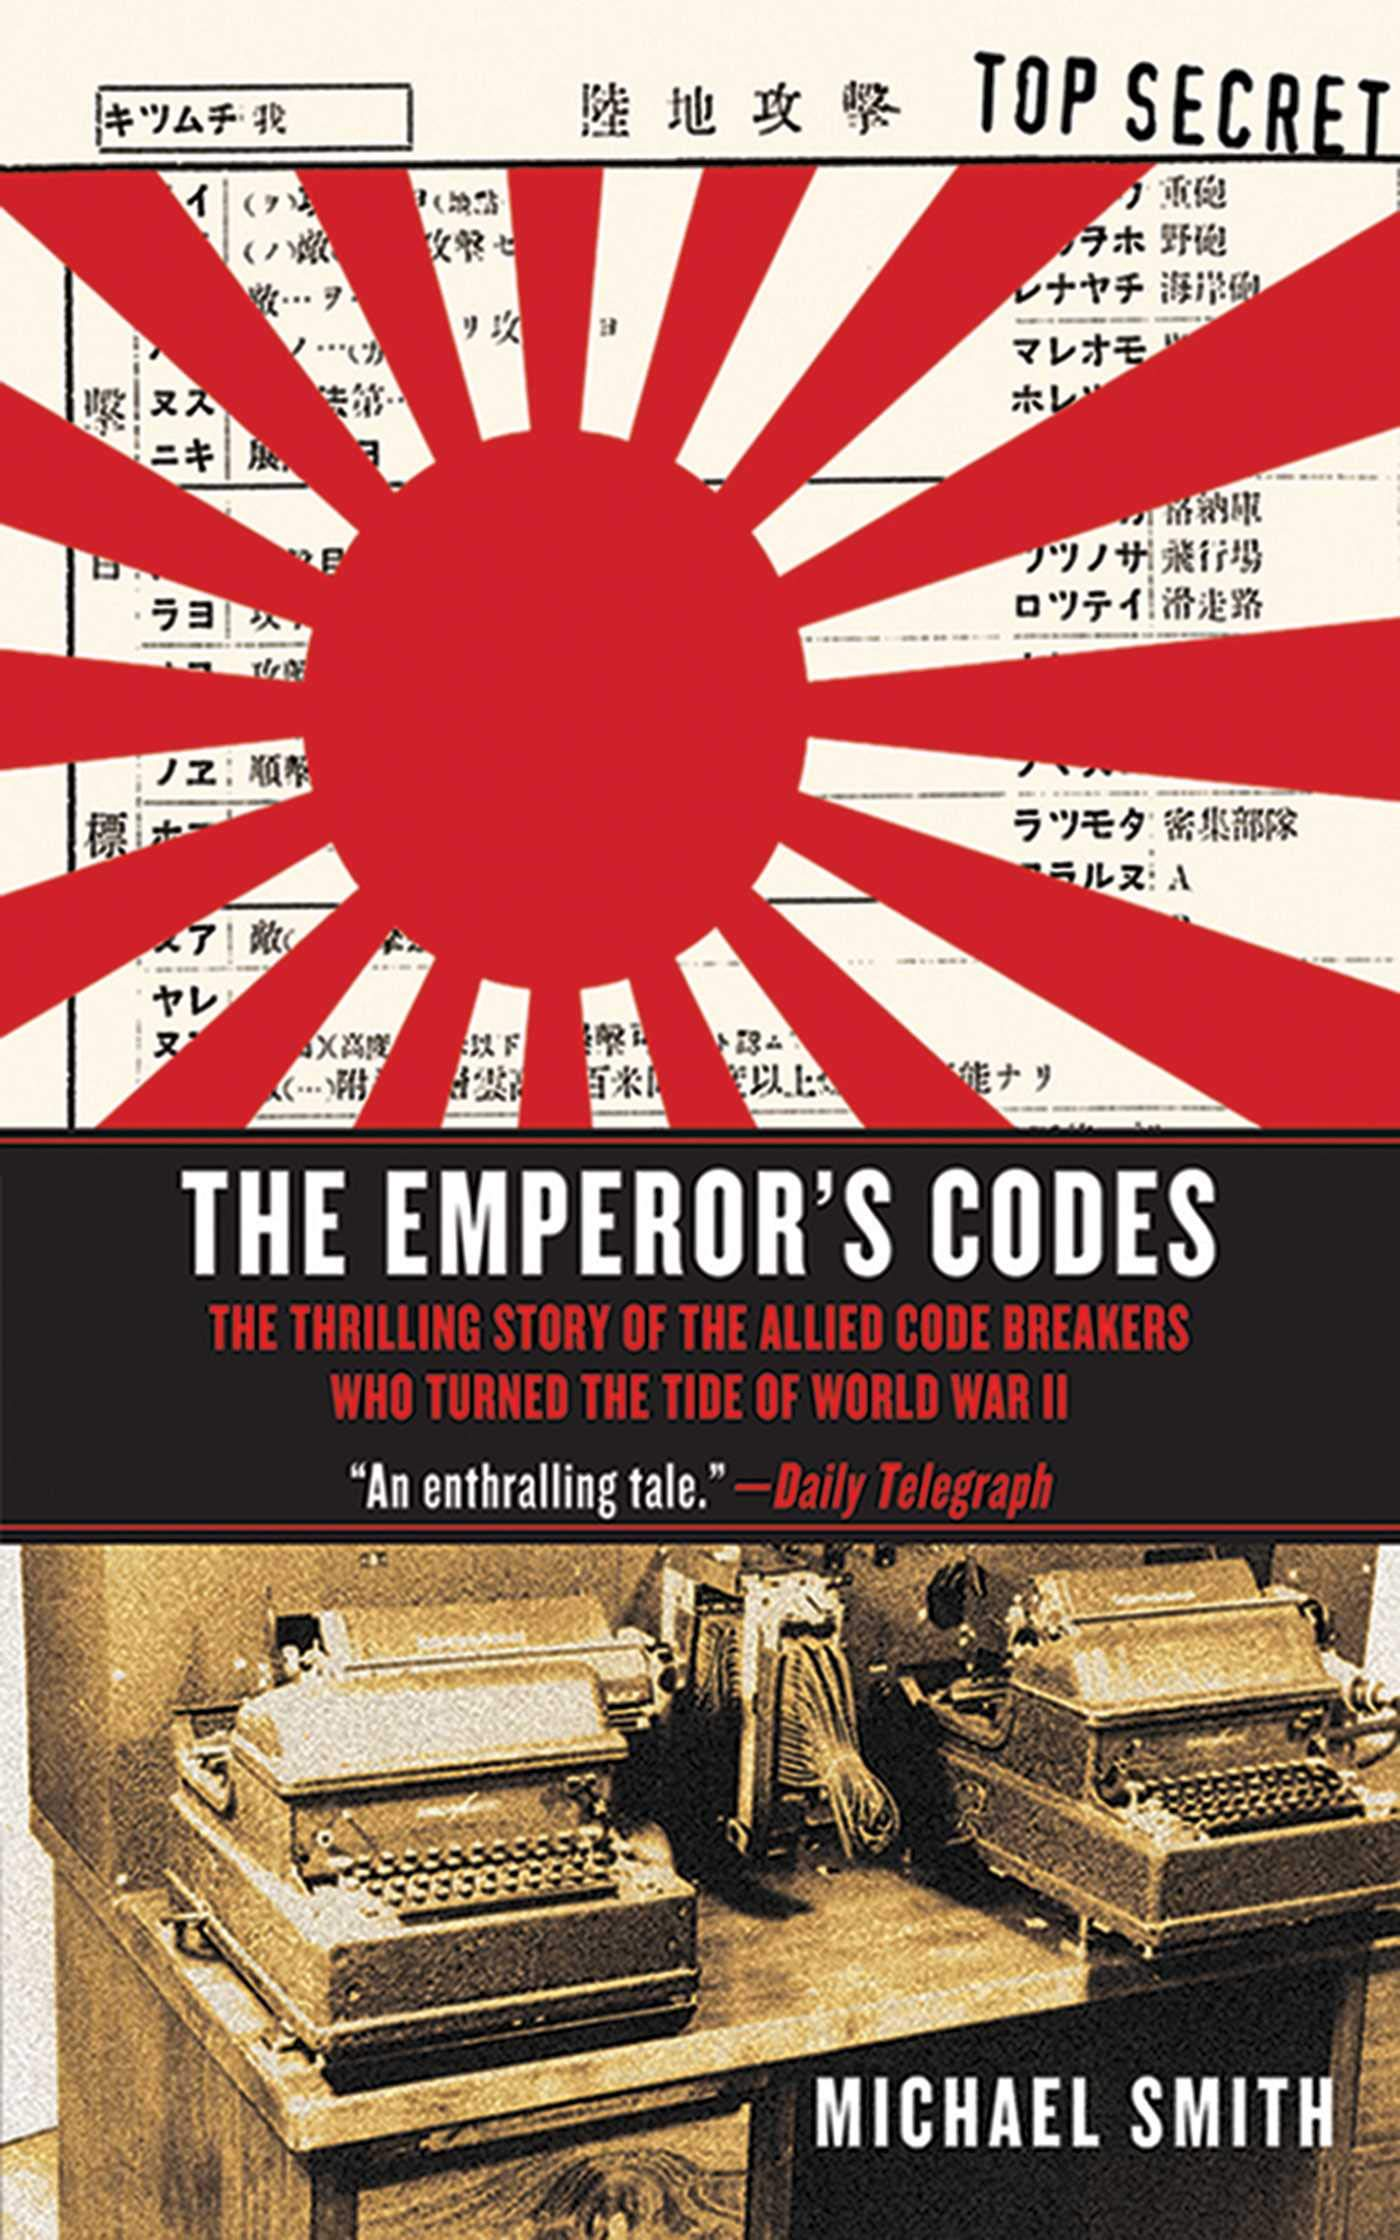 The Emperor S Codes The Thrilling Story Of The Allied Code Breakers Who Turned The Tide Of World War Ii Smith Michael 9781611450170 Amazon Com Books